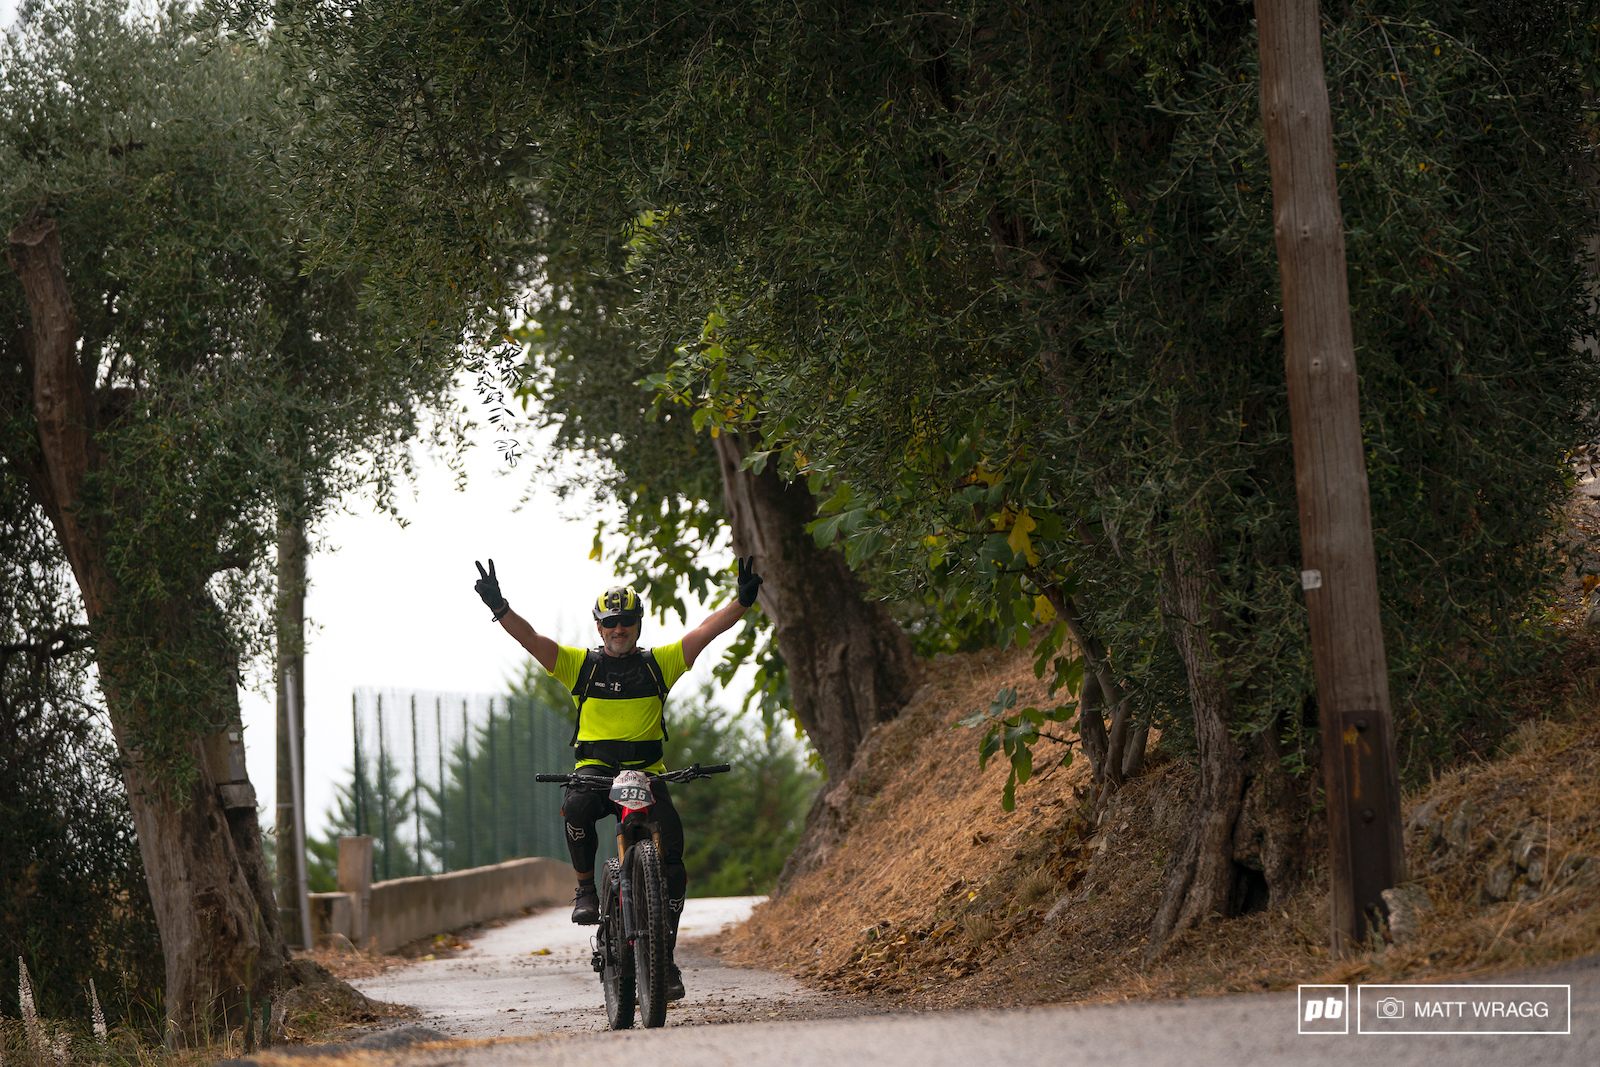 In recent years ebikes have opened the race up allowing more people to try their hand at this kind of high mountain racing.